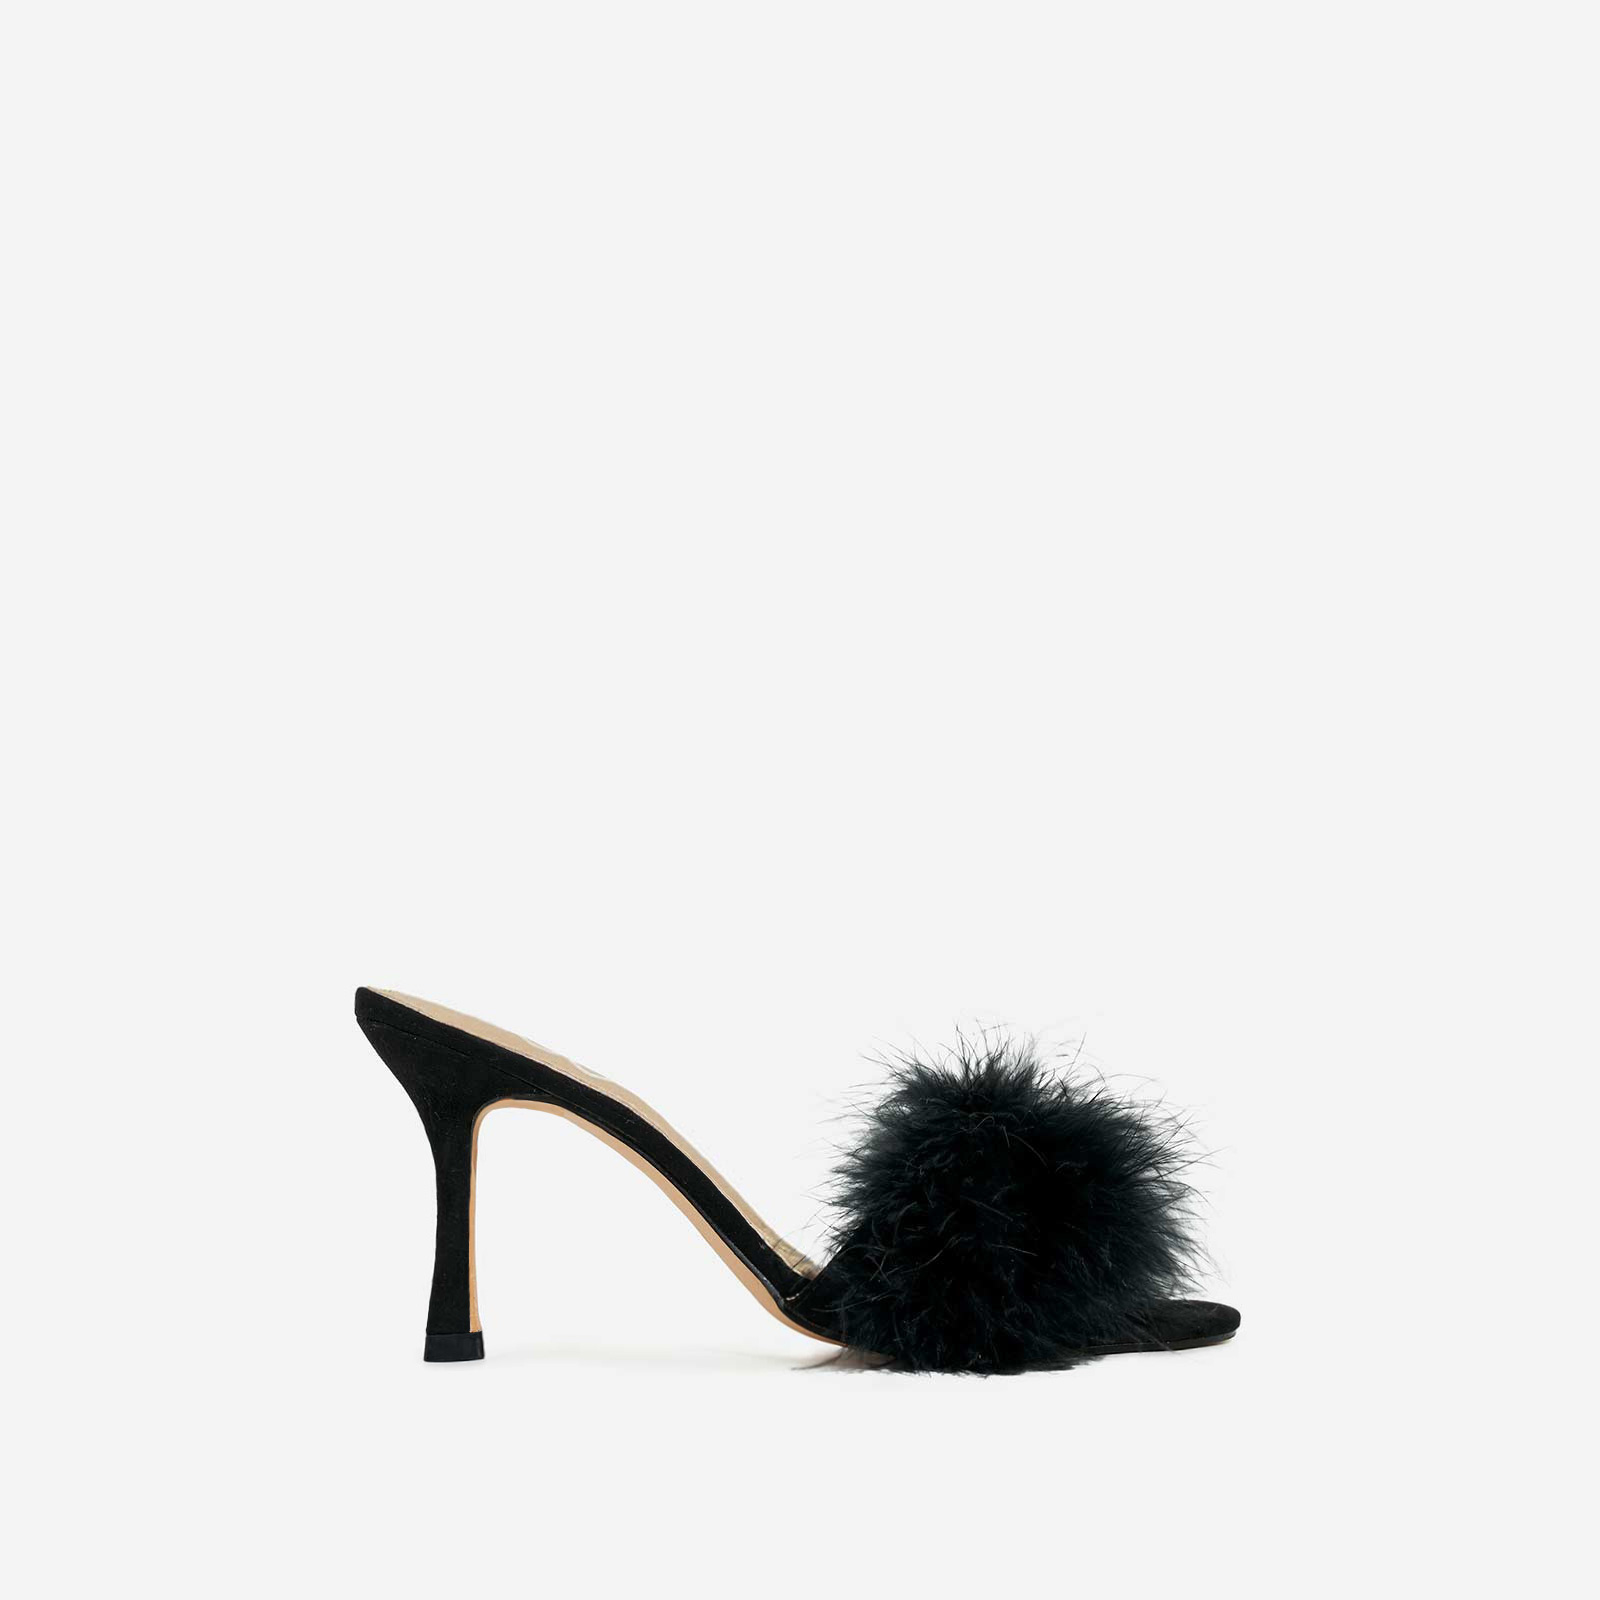 Fairydust Faux Feather Peep Toe Kitten Heel Mule In Black Faux Suede